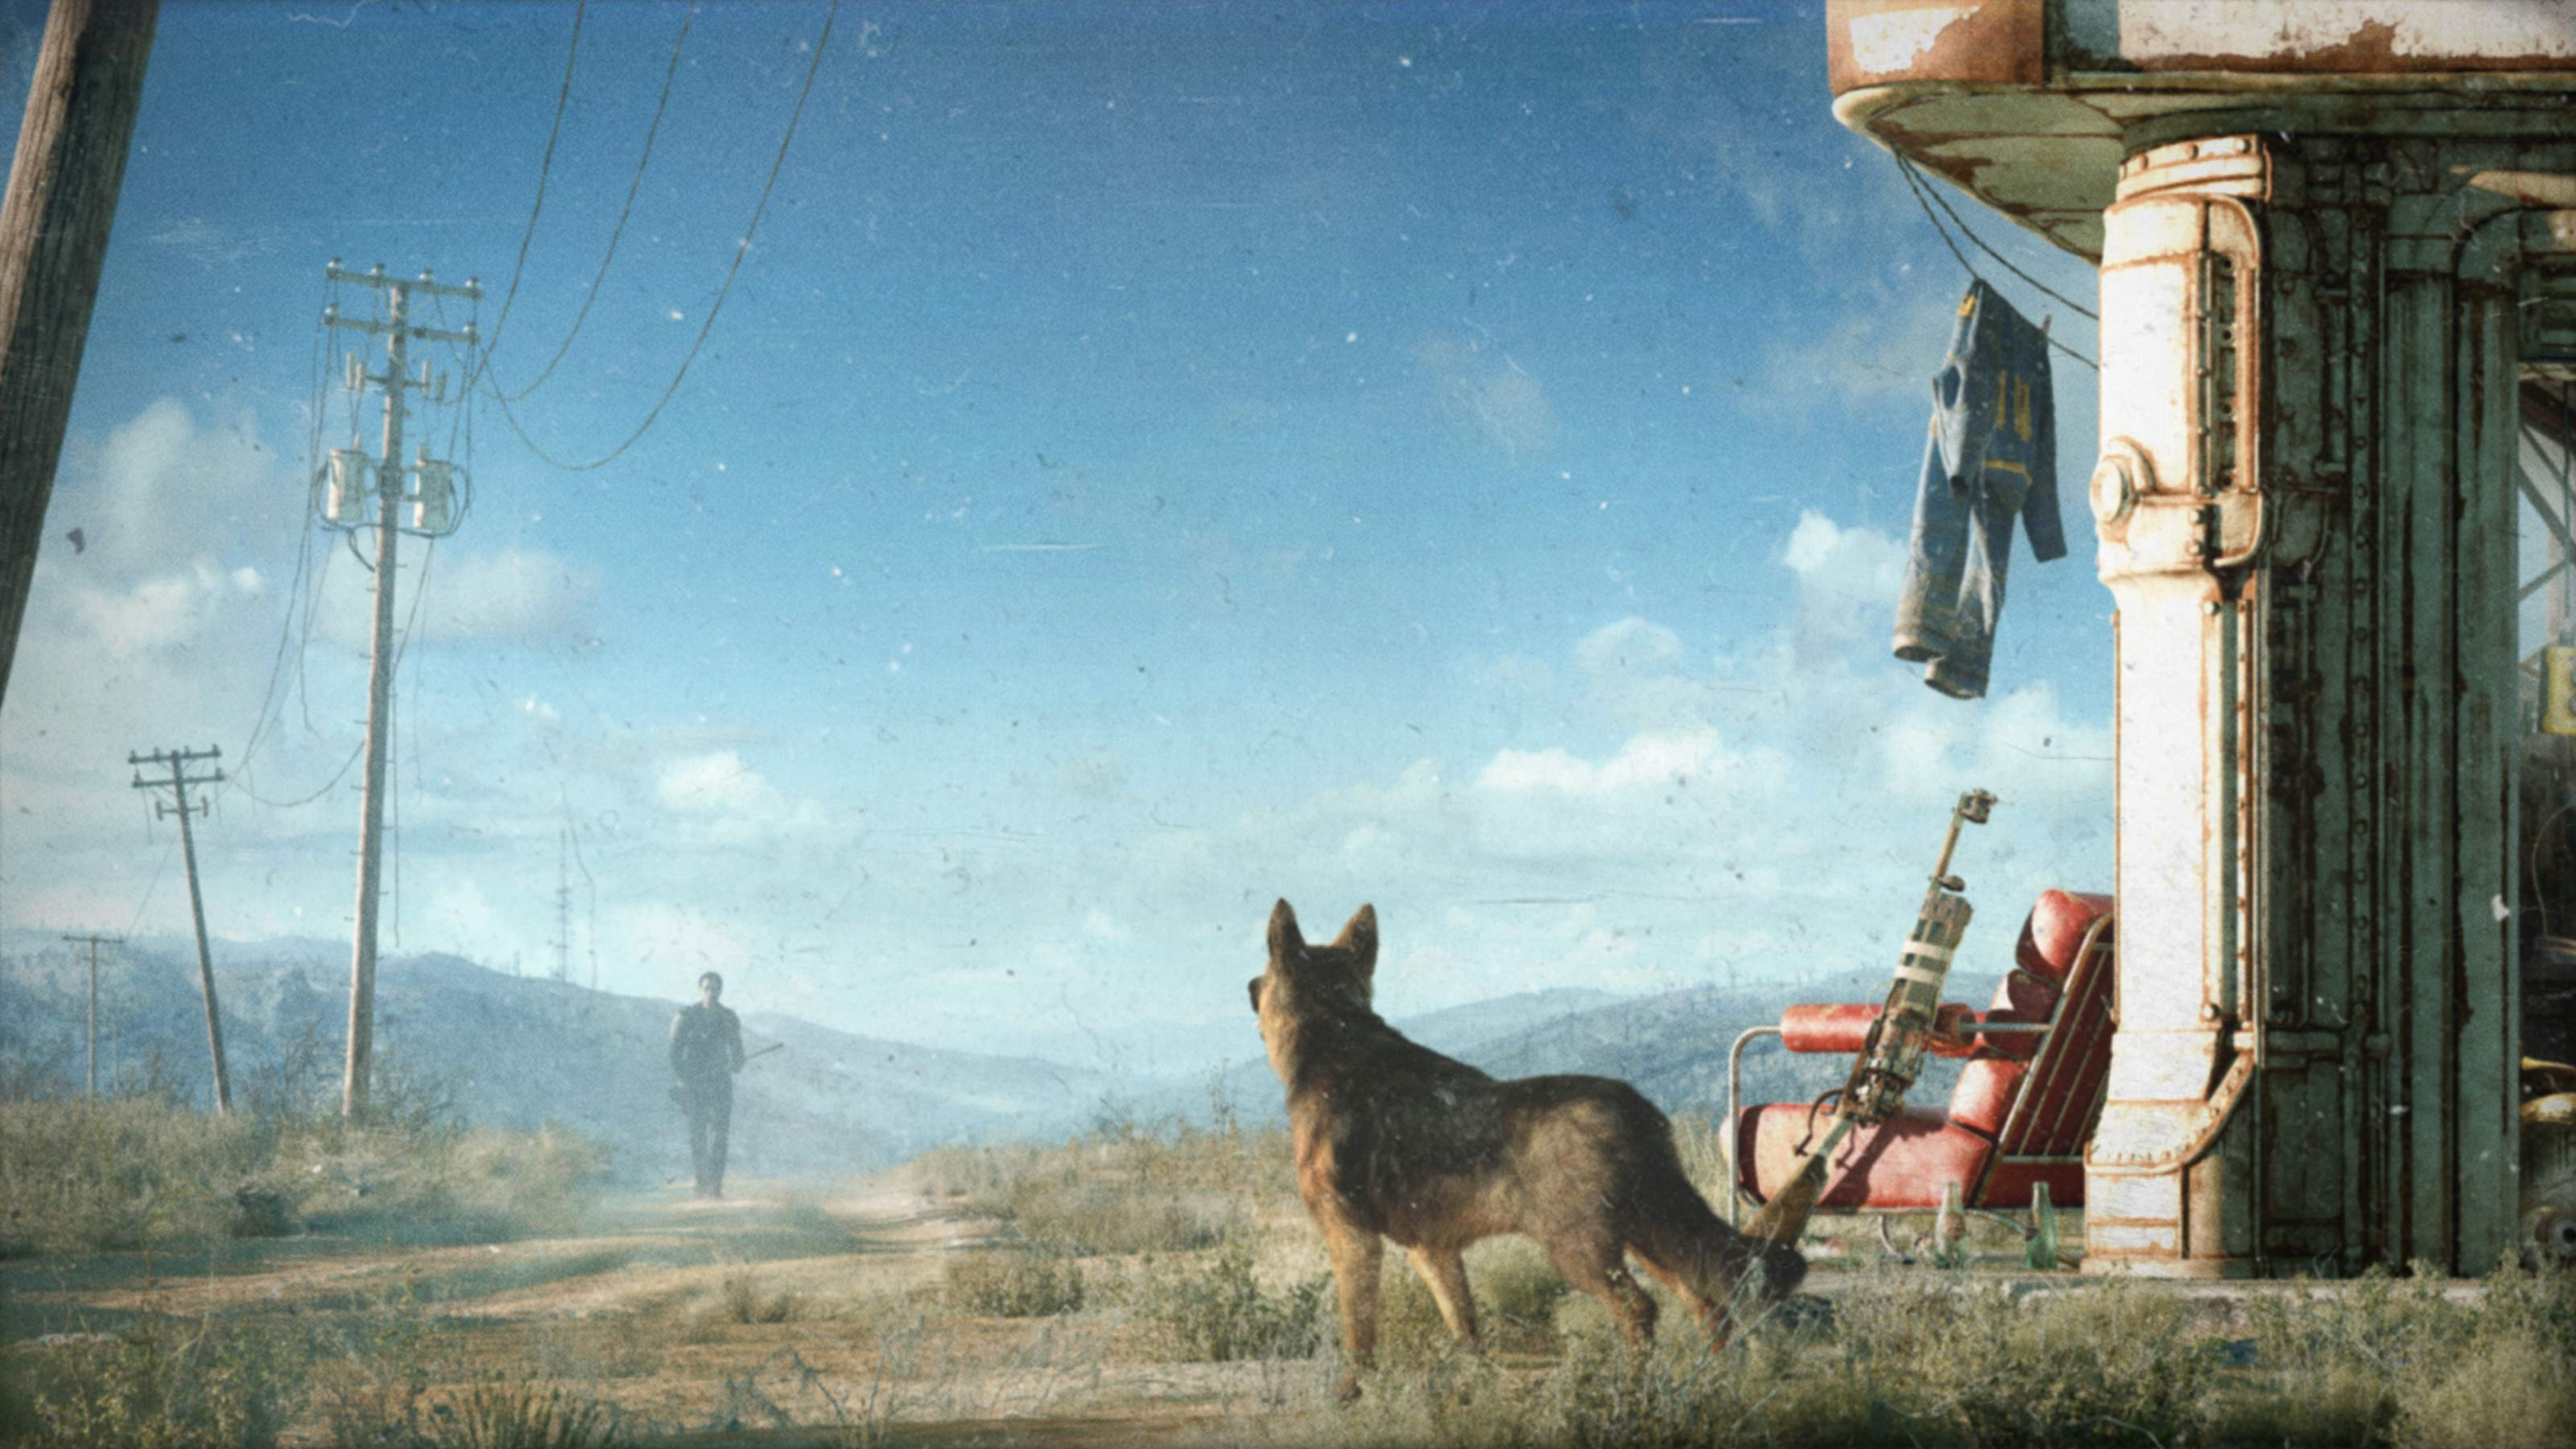 First meeting with the Dog - Fallout 4 арт, Заправка, Собака